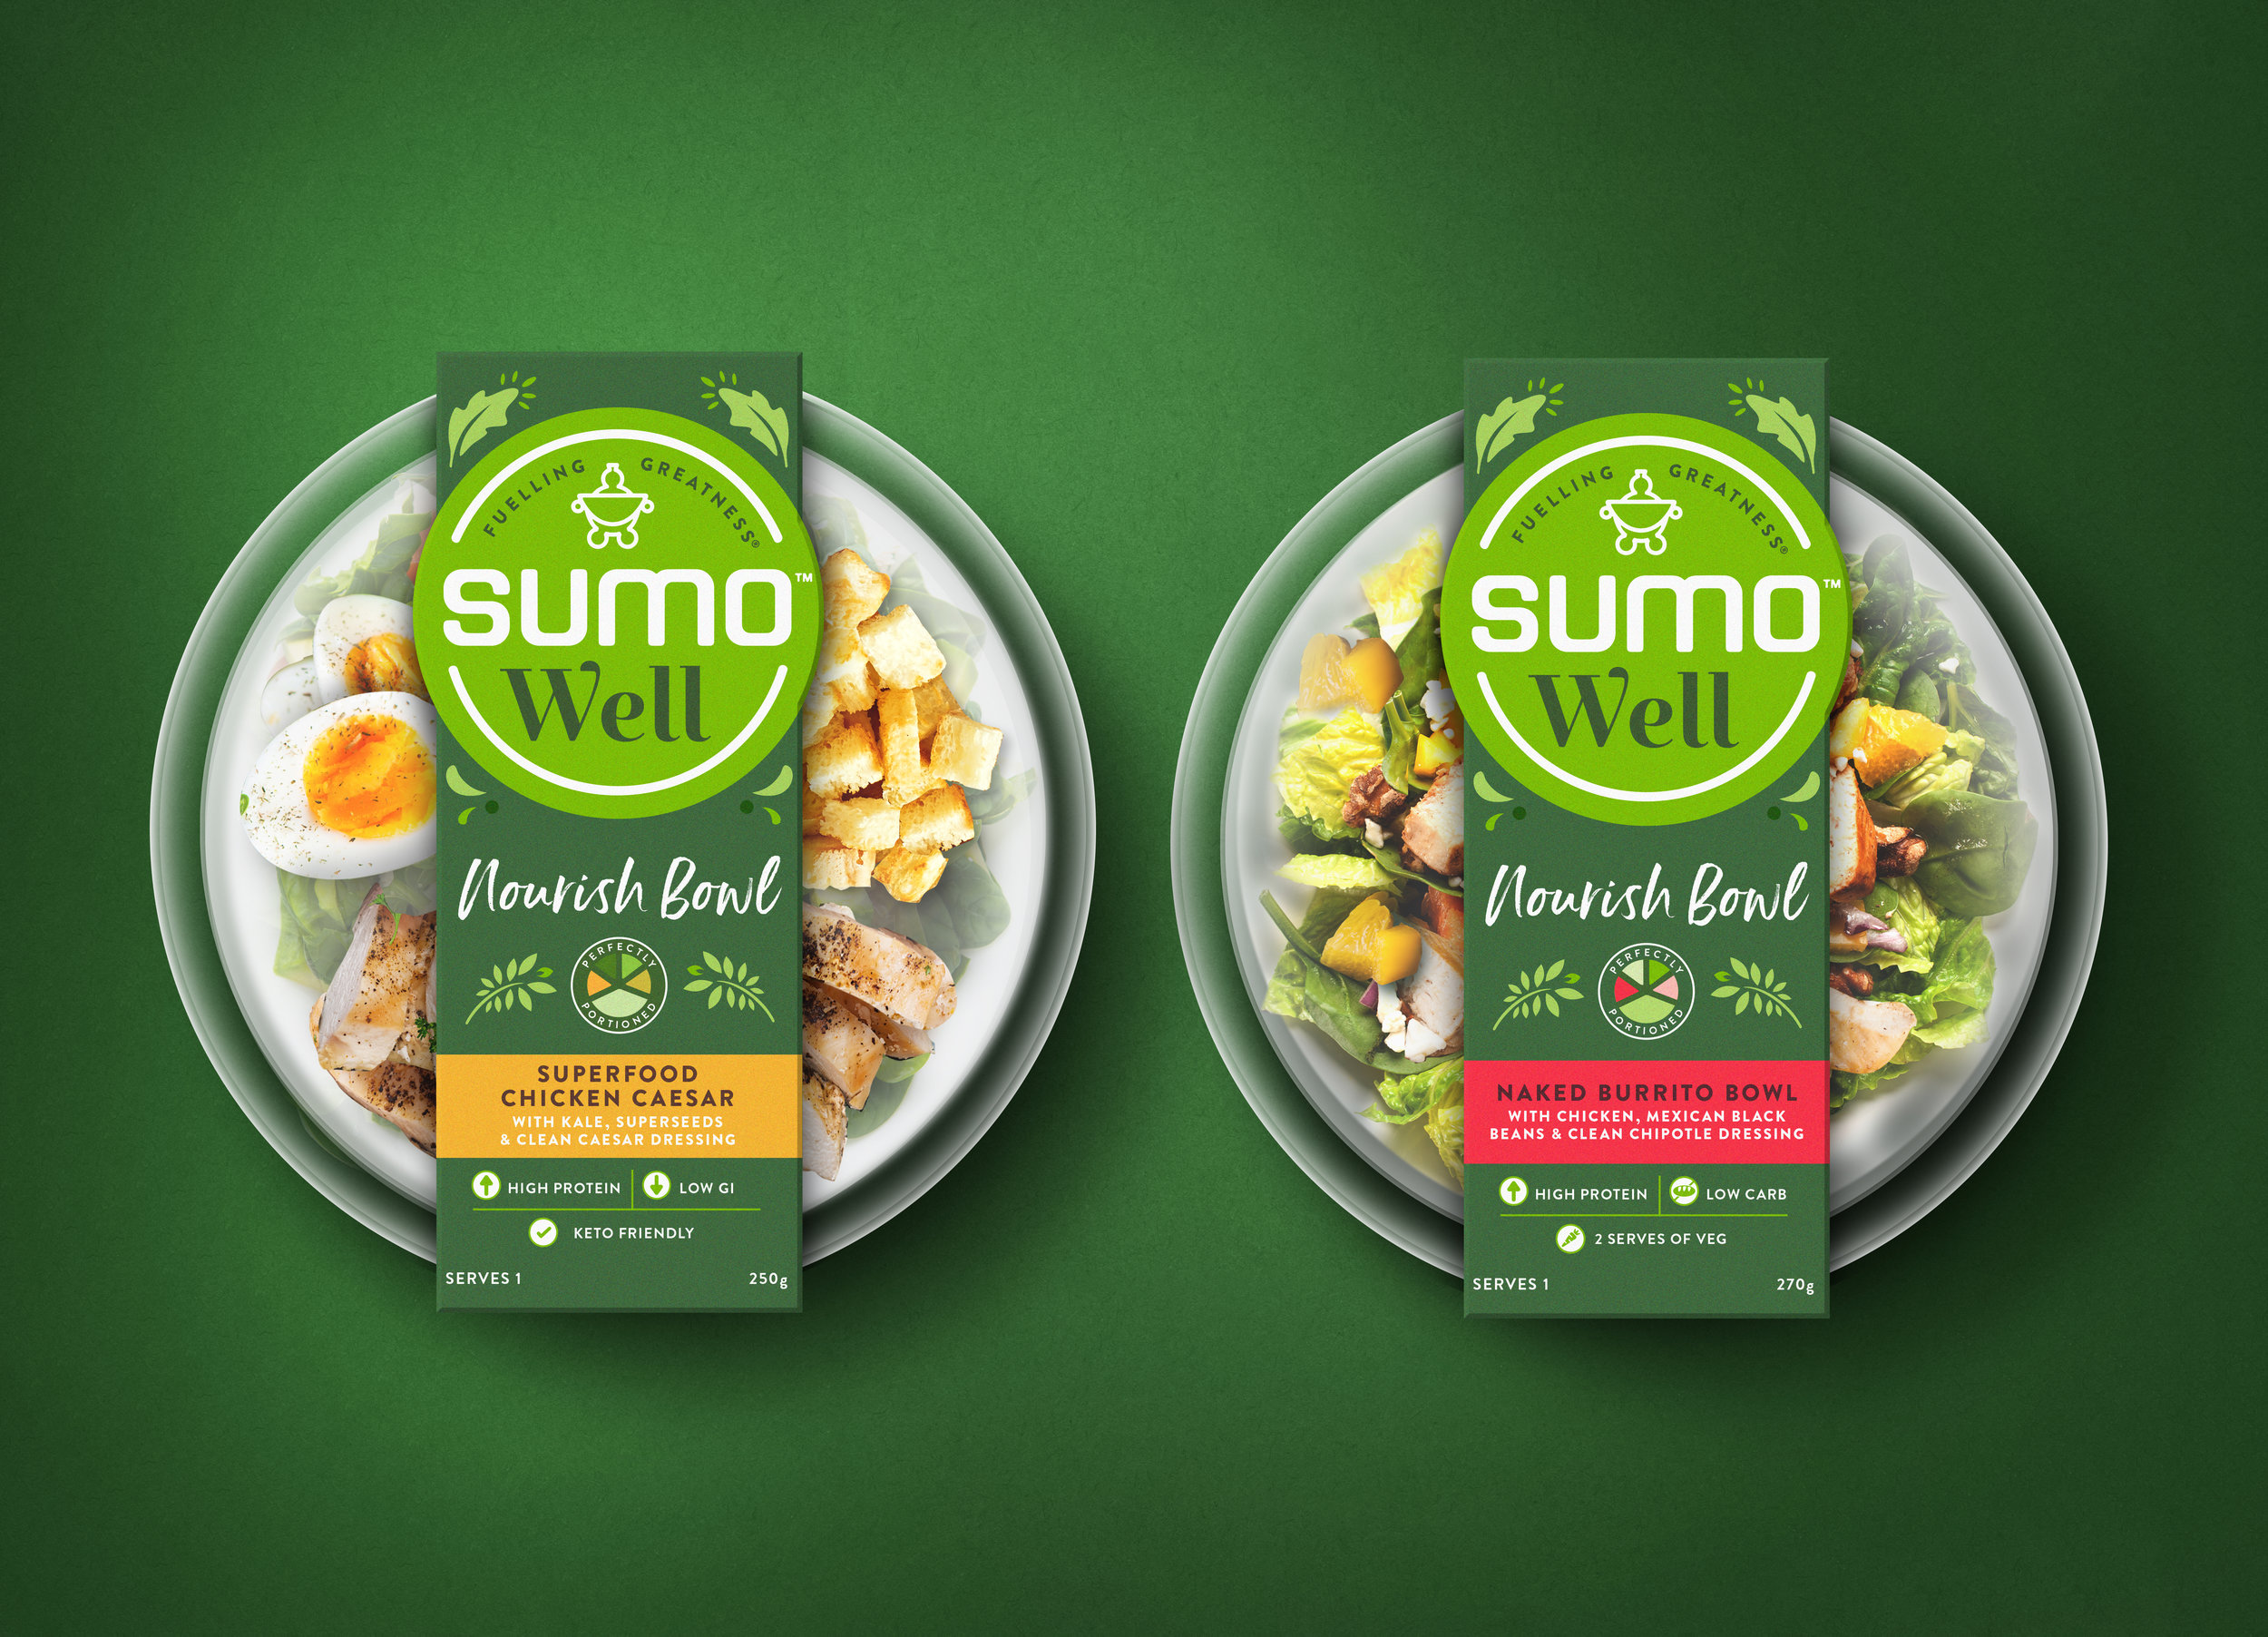 Sumo Well, Sumo Salad, Packaging Design, Our Revolution, Brand Design, Brand Logo, Brand Strategy, Brand Innovation, Food Packaging, Food Design, Food Brand, Health food Branding, Salad Packaging, Heath innovation, Packaging Innovation